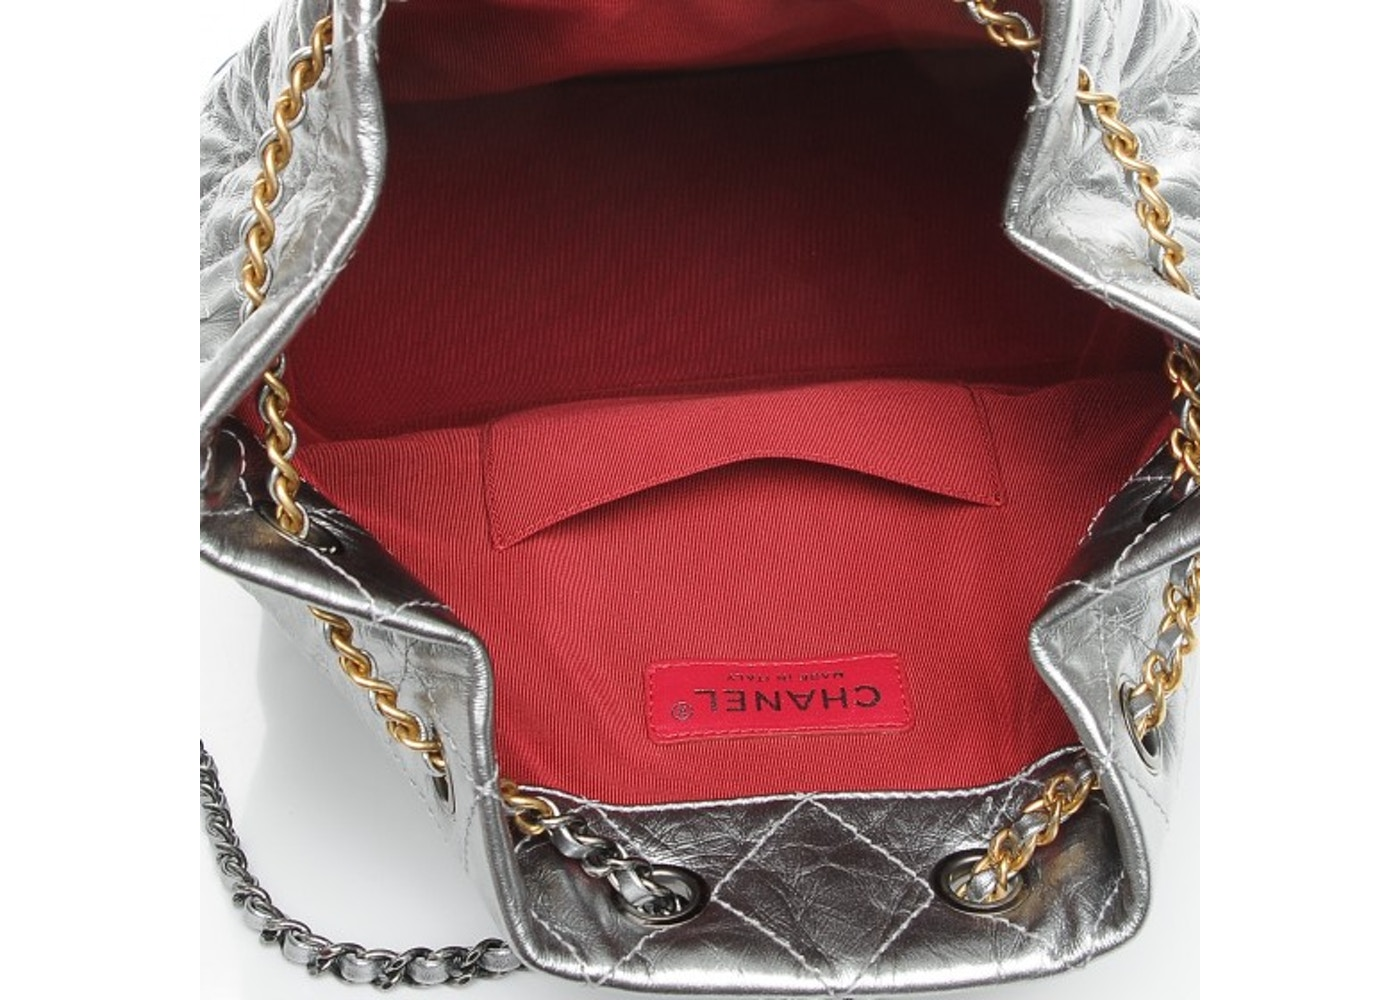 10161430323a Chanel Gabrielle Backpack Quilted Diamond Metallic/Crumple Silver